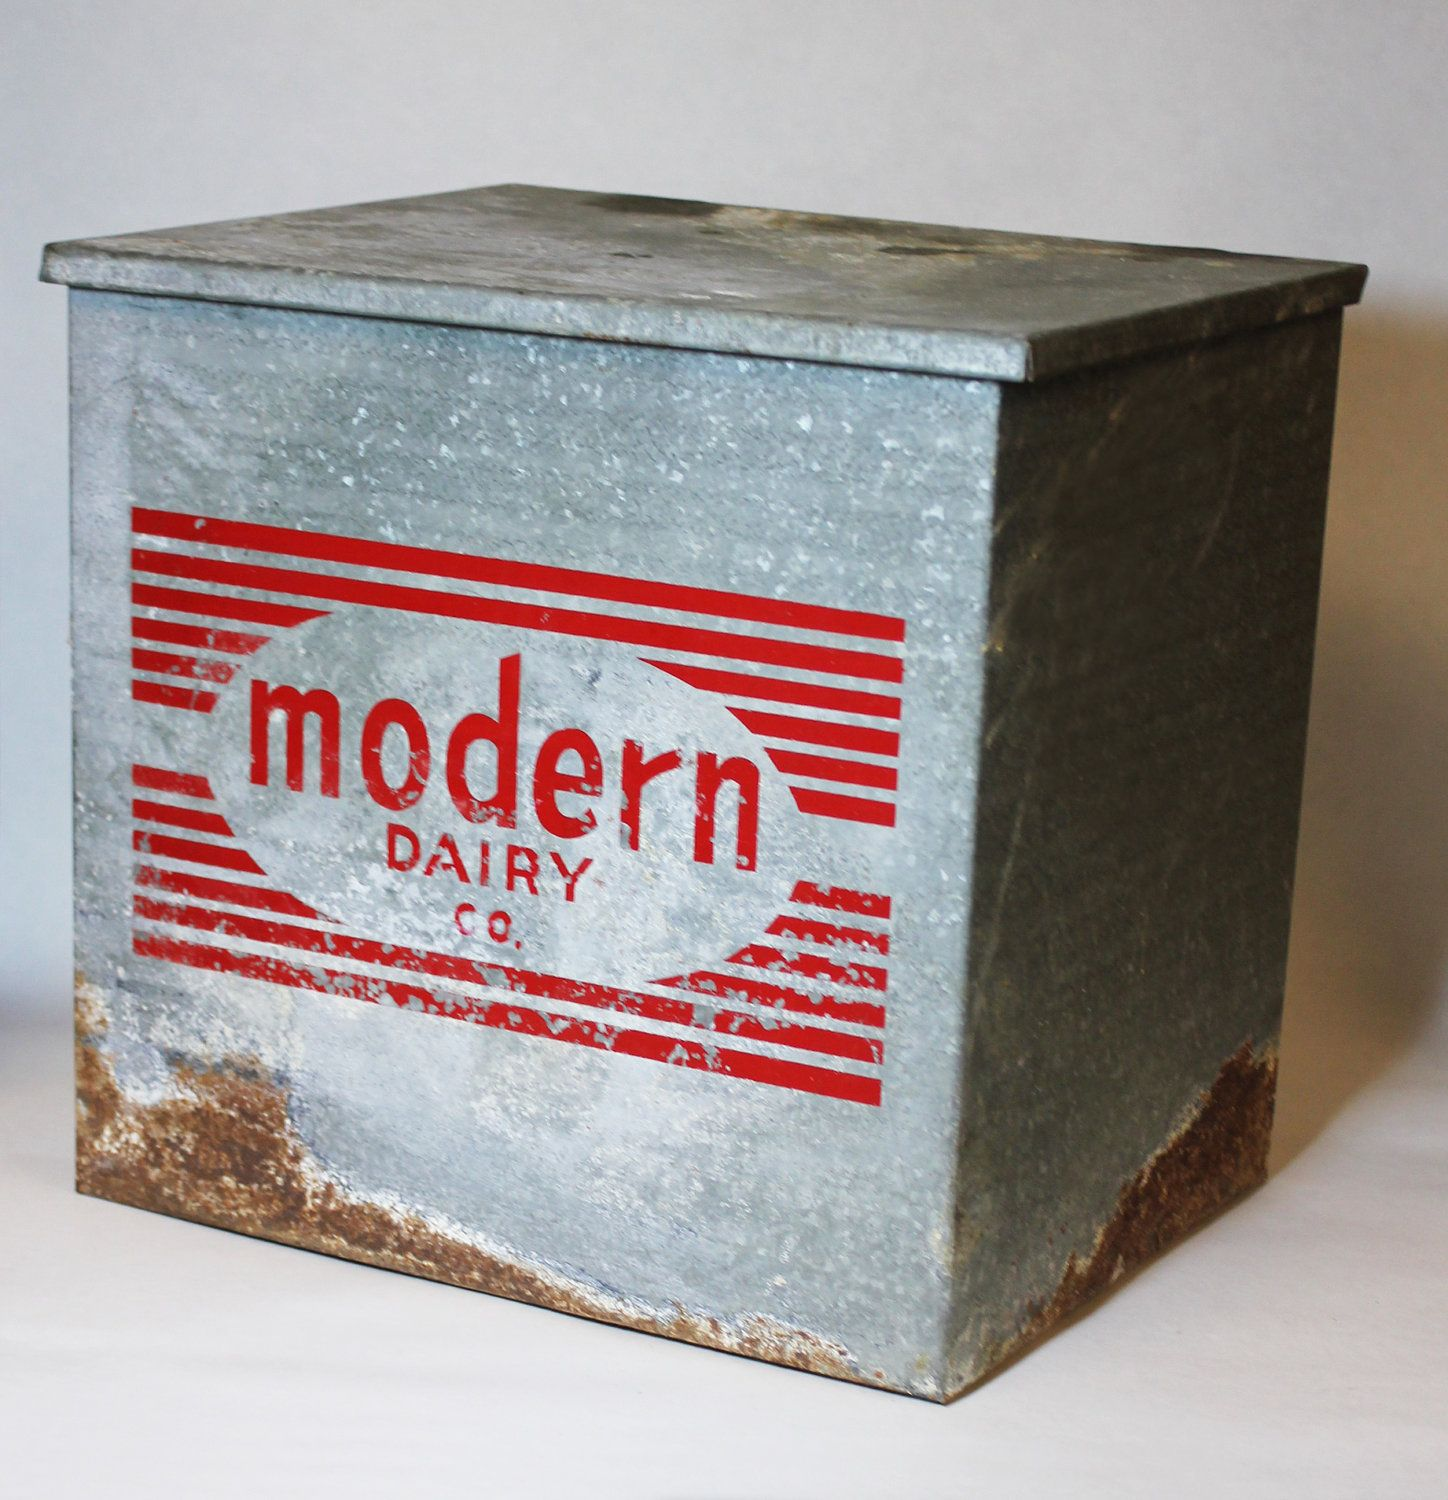 Vintage Milk Cooler Retro Insulated Metal Modern Dairy Box For Home Delivery Bar Storage C 1960s 70s Milk Coolers Milk Delivery Vintage Housewares